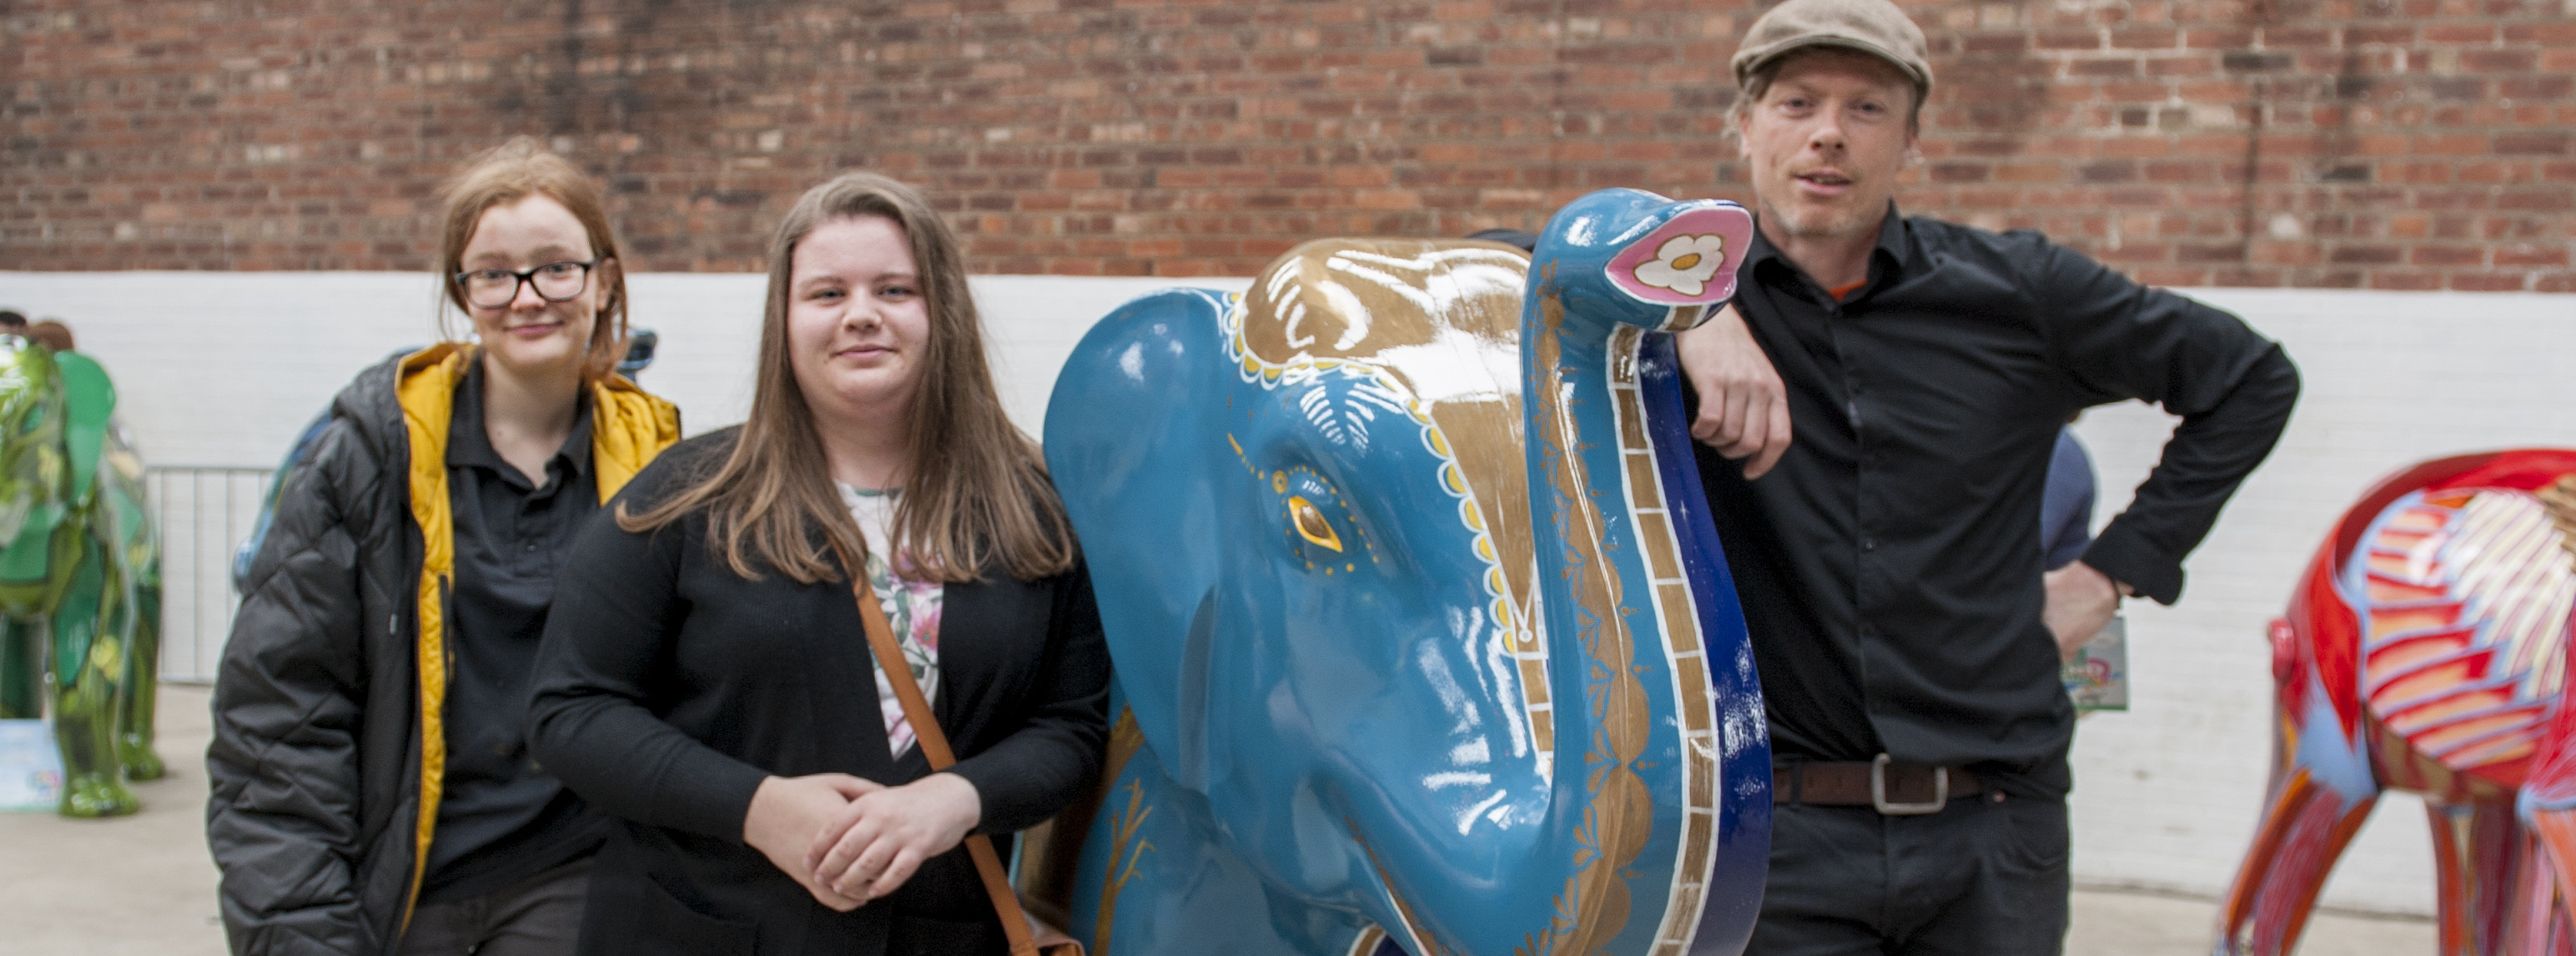 Design and Visual Arts Students Support Herd of Sheffield